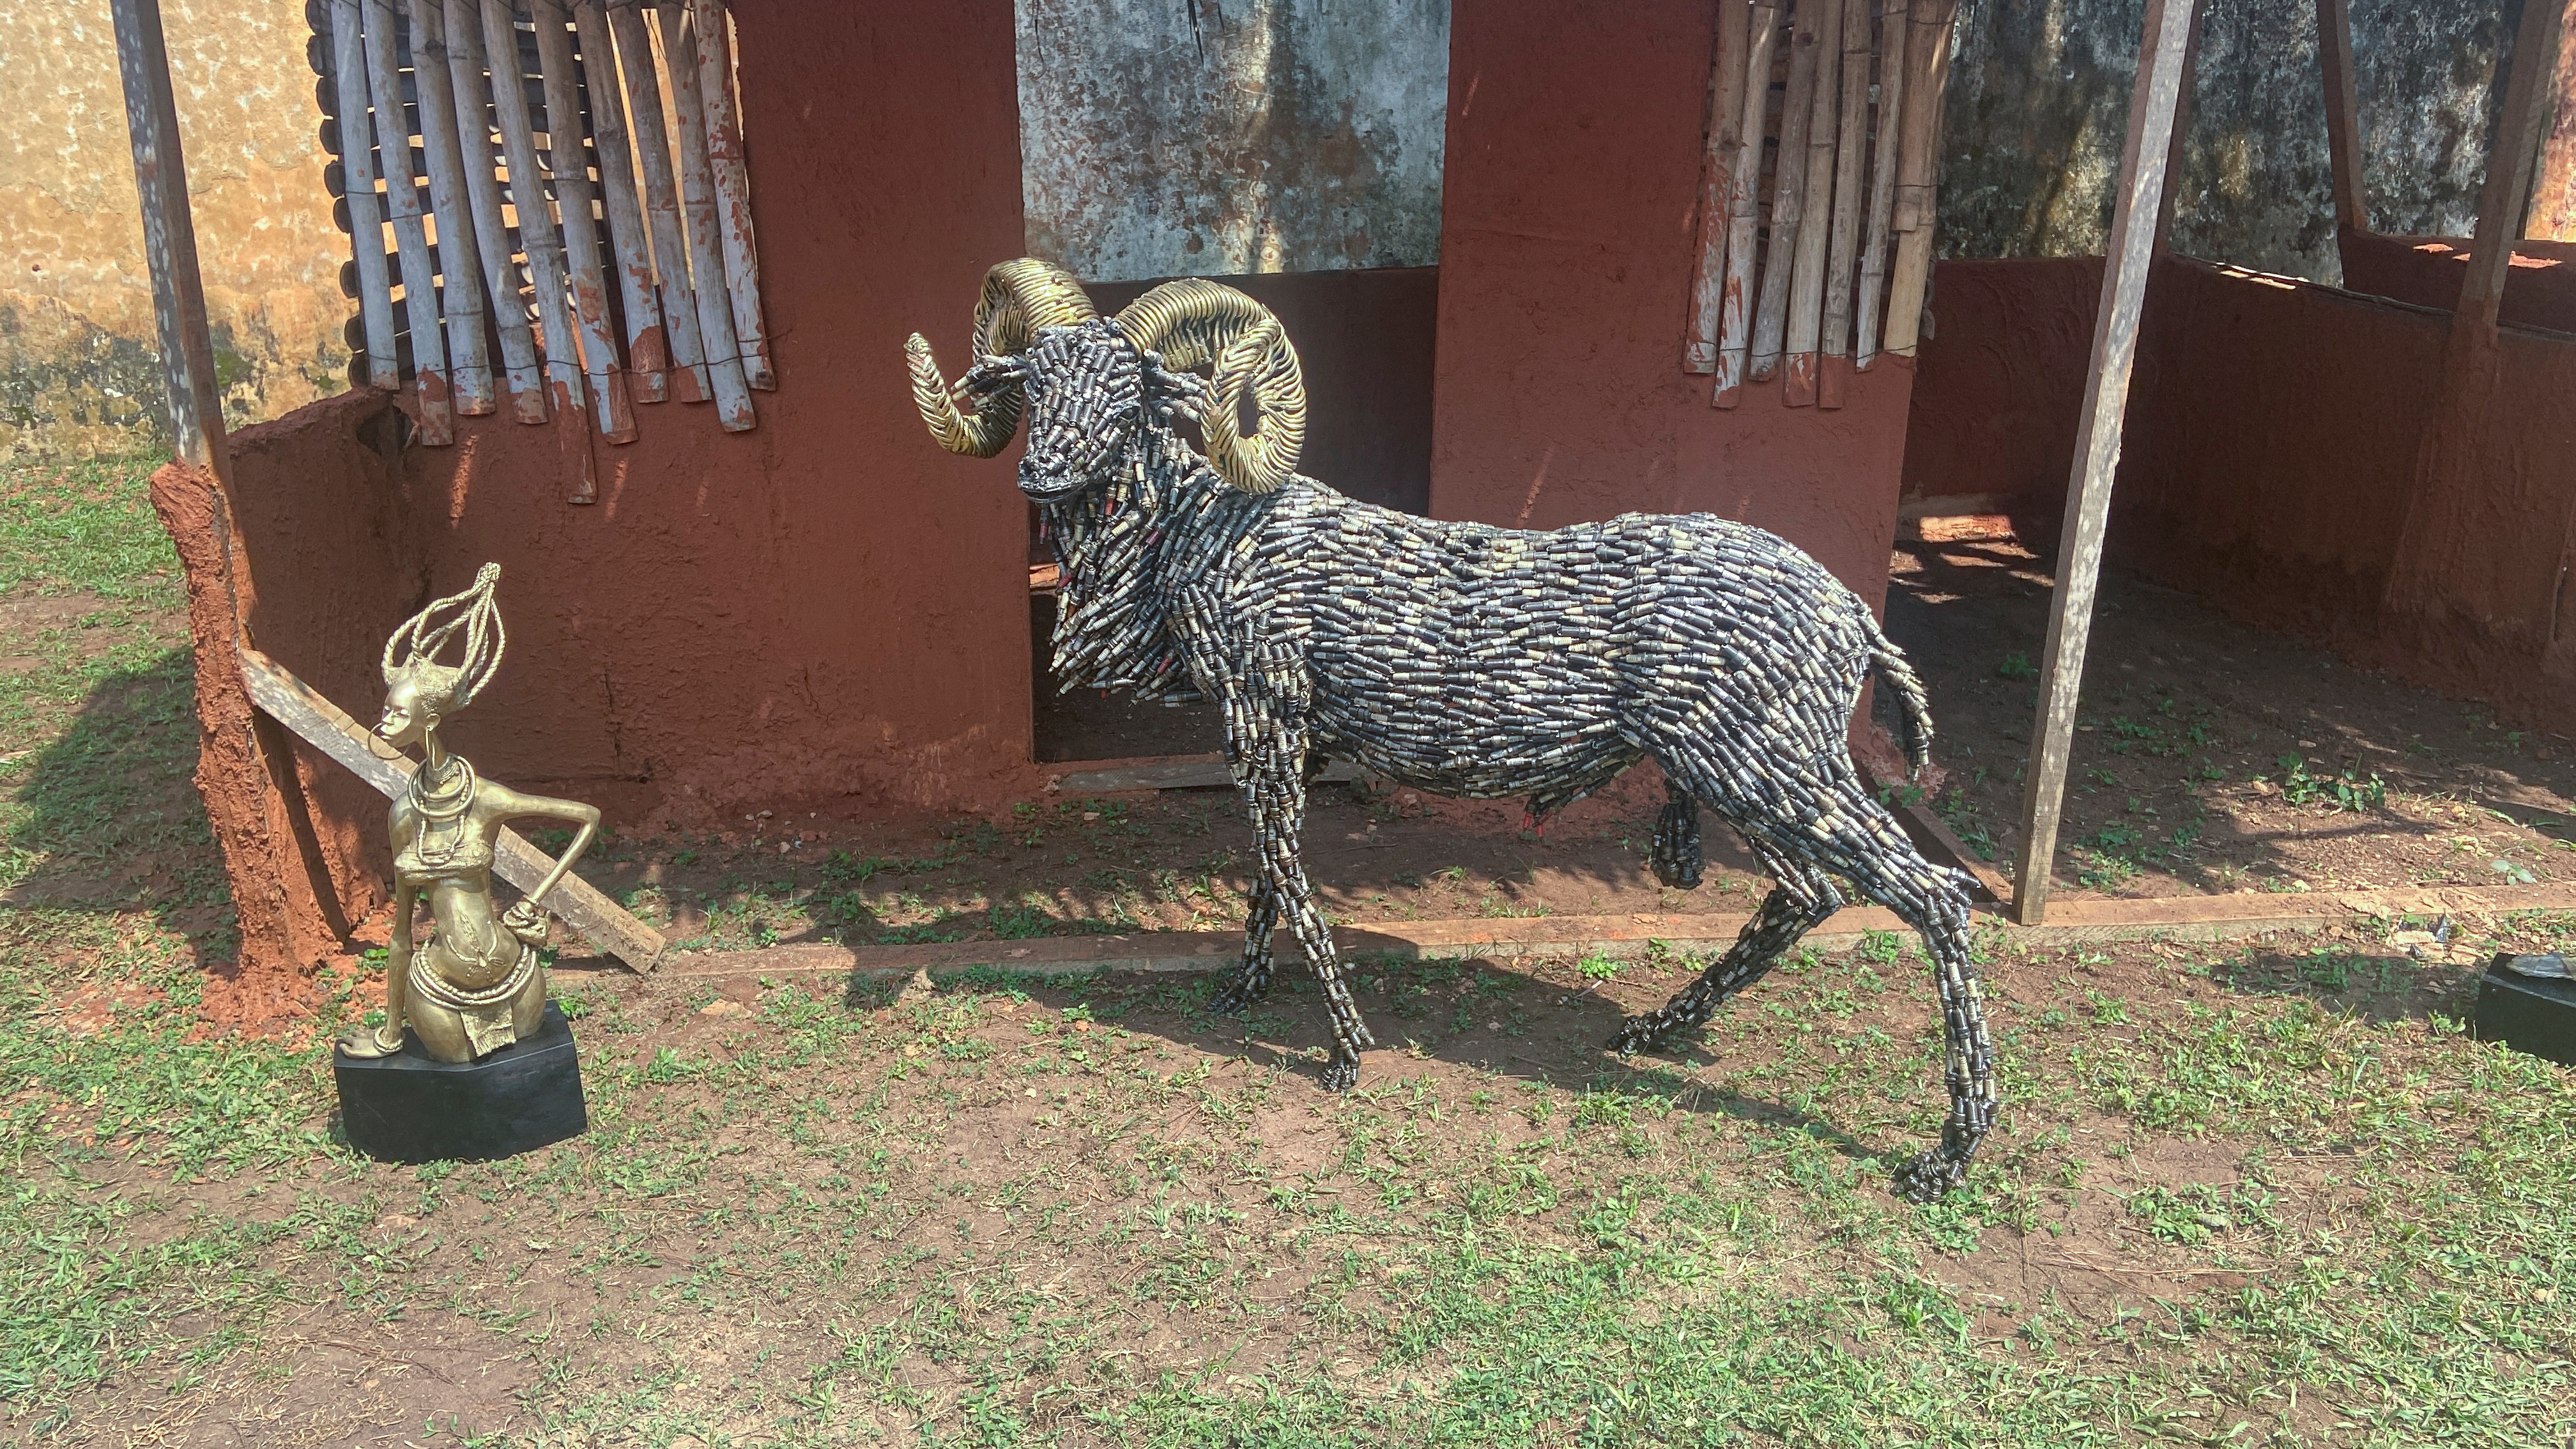 A life-size ram made from spark plugs, one of the artworks offered to the British Museum by Nigerian artists, is displayed in Benin City, Nigeria, July 31, 2021. REUTERS/Tife Owolabi